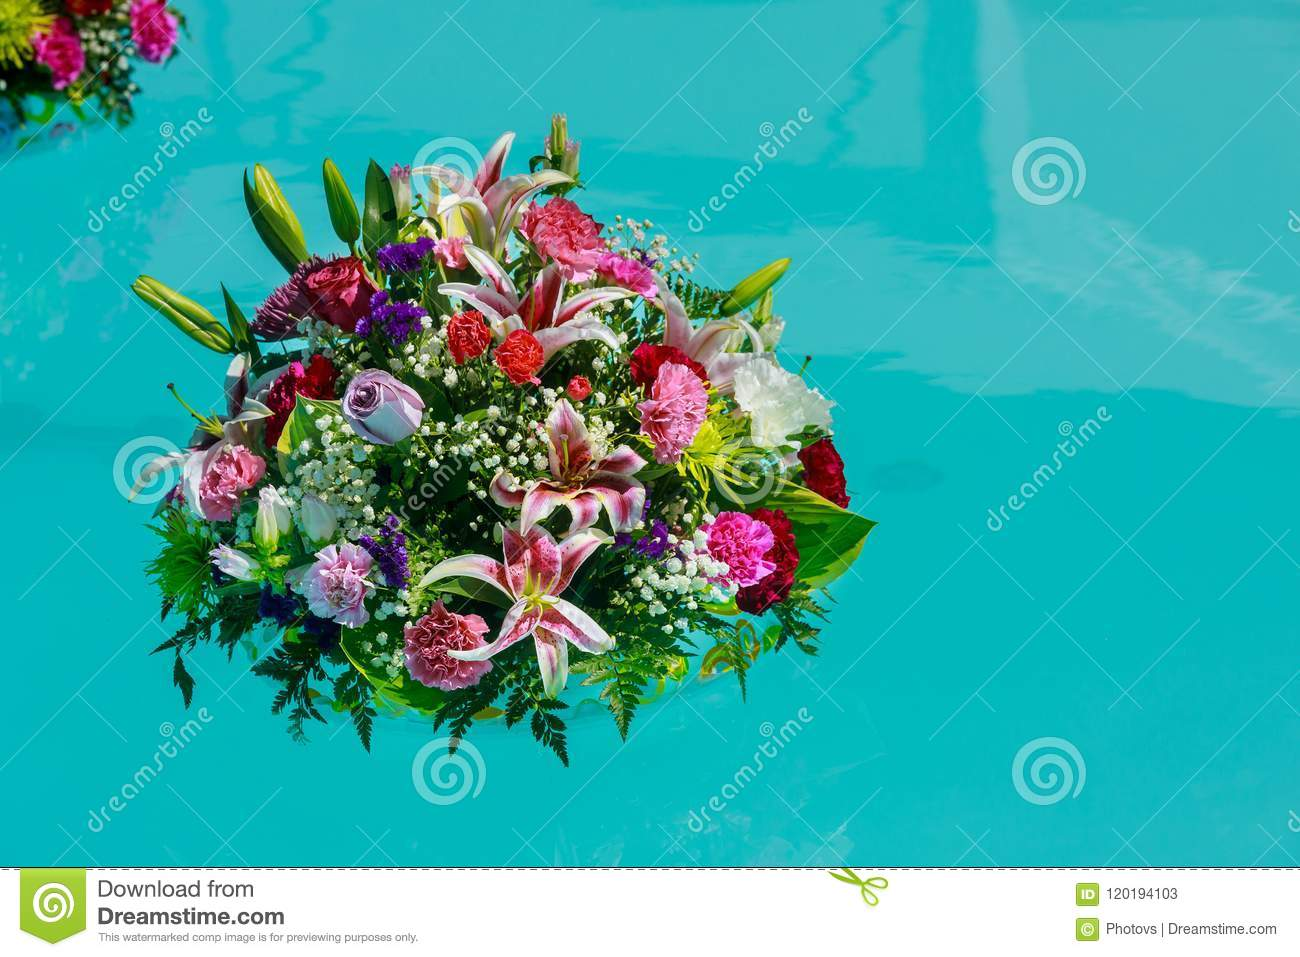 Beautiful Fresh Wedding Flowers In Bunch Of Swim In The Colorful